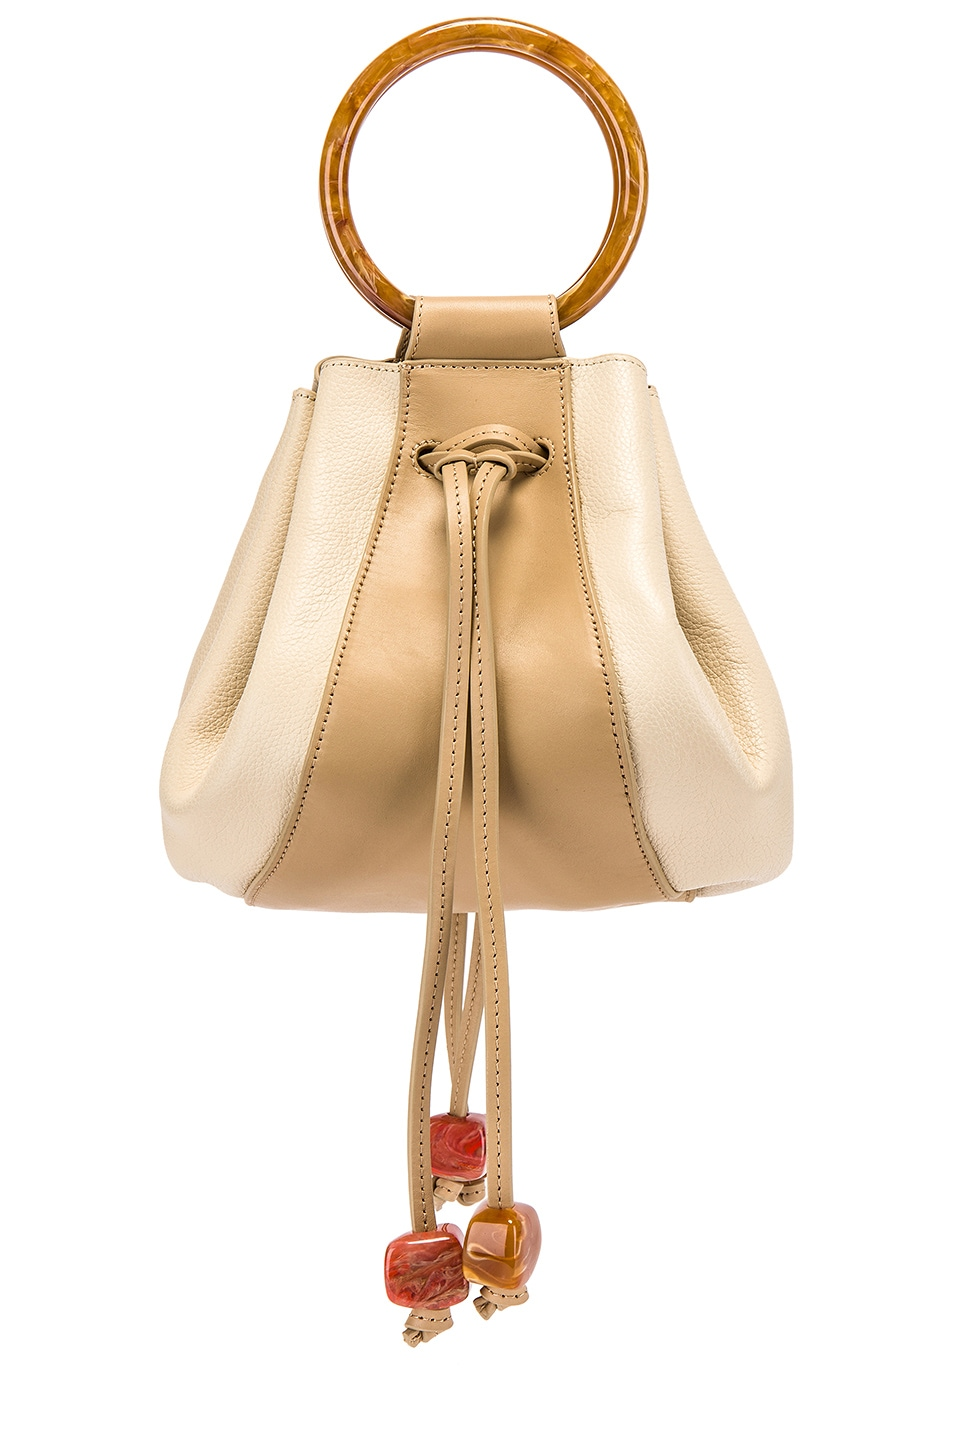 Ulla Johnson Palma Mini Bag in Bone